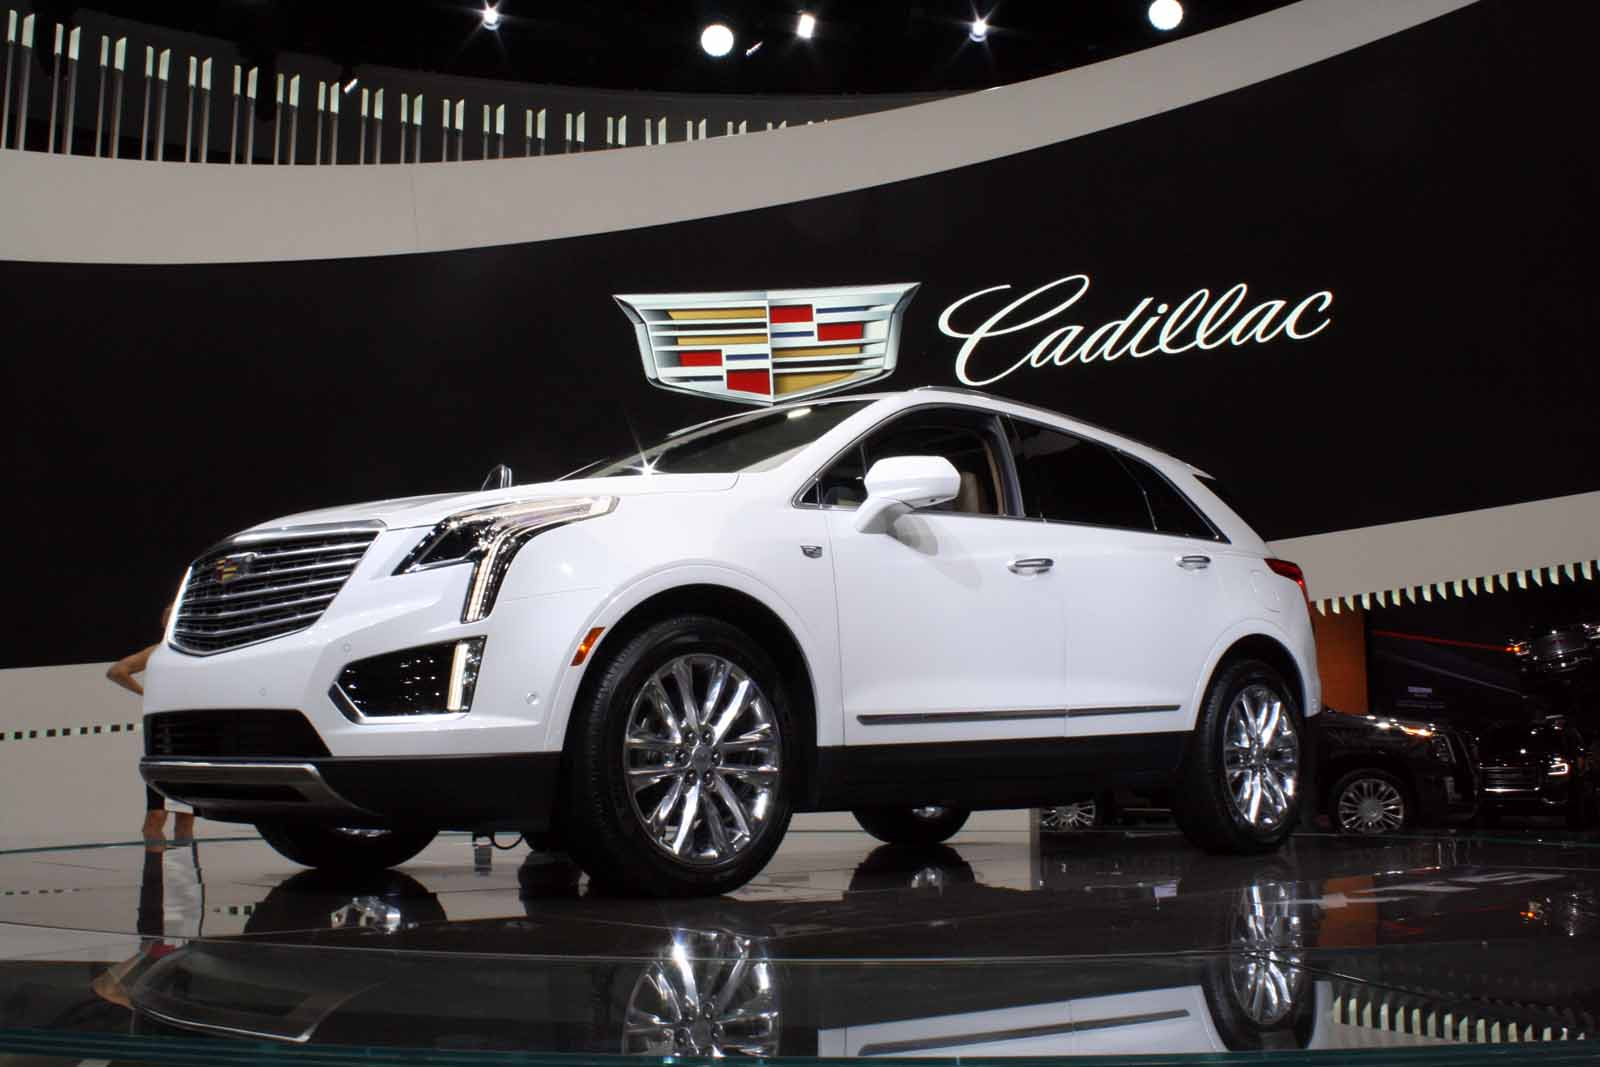 date suv youtube specs escalade cadillac release price review watch